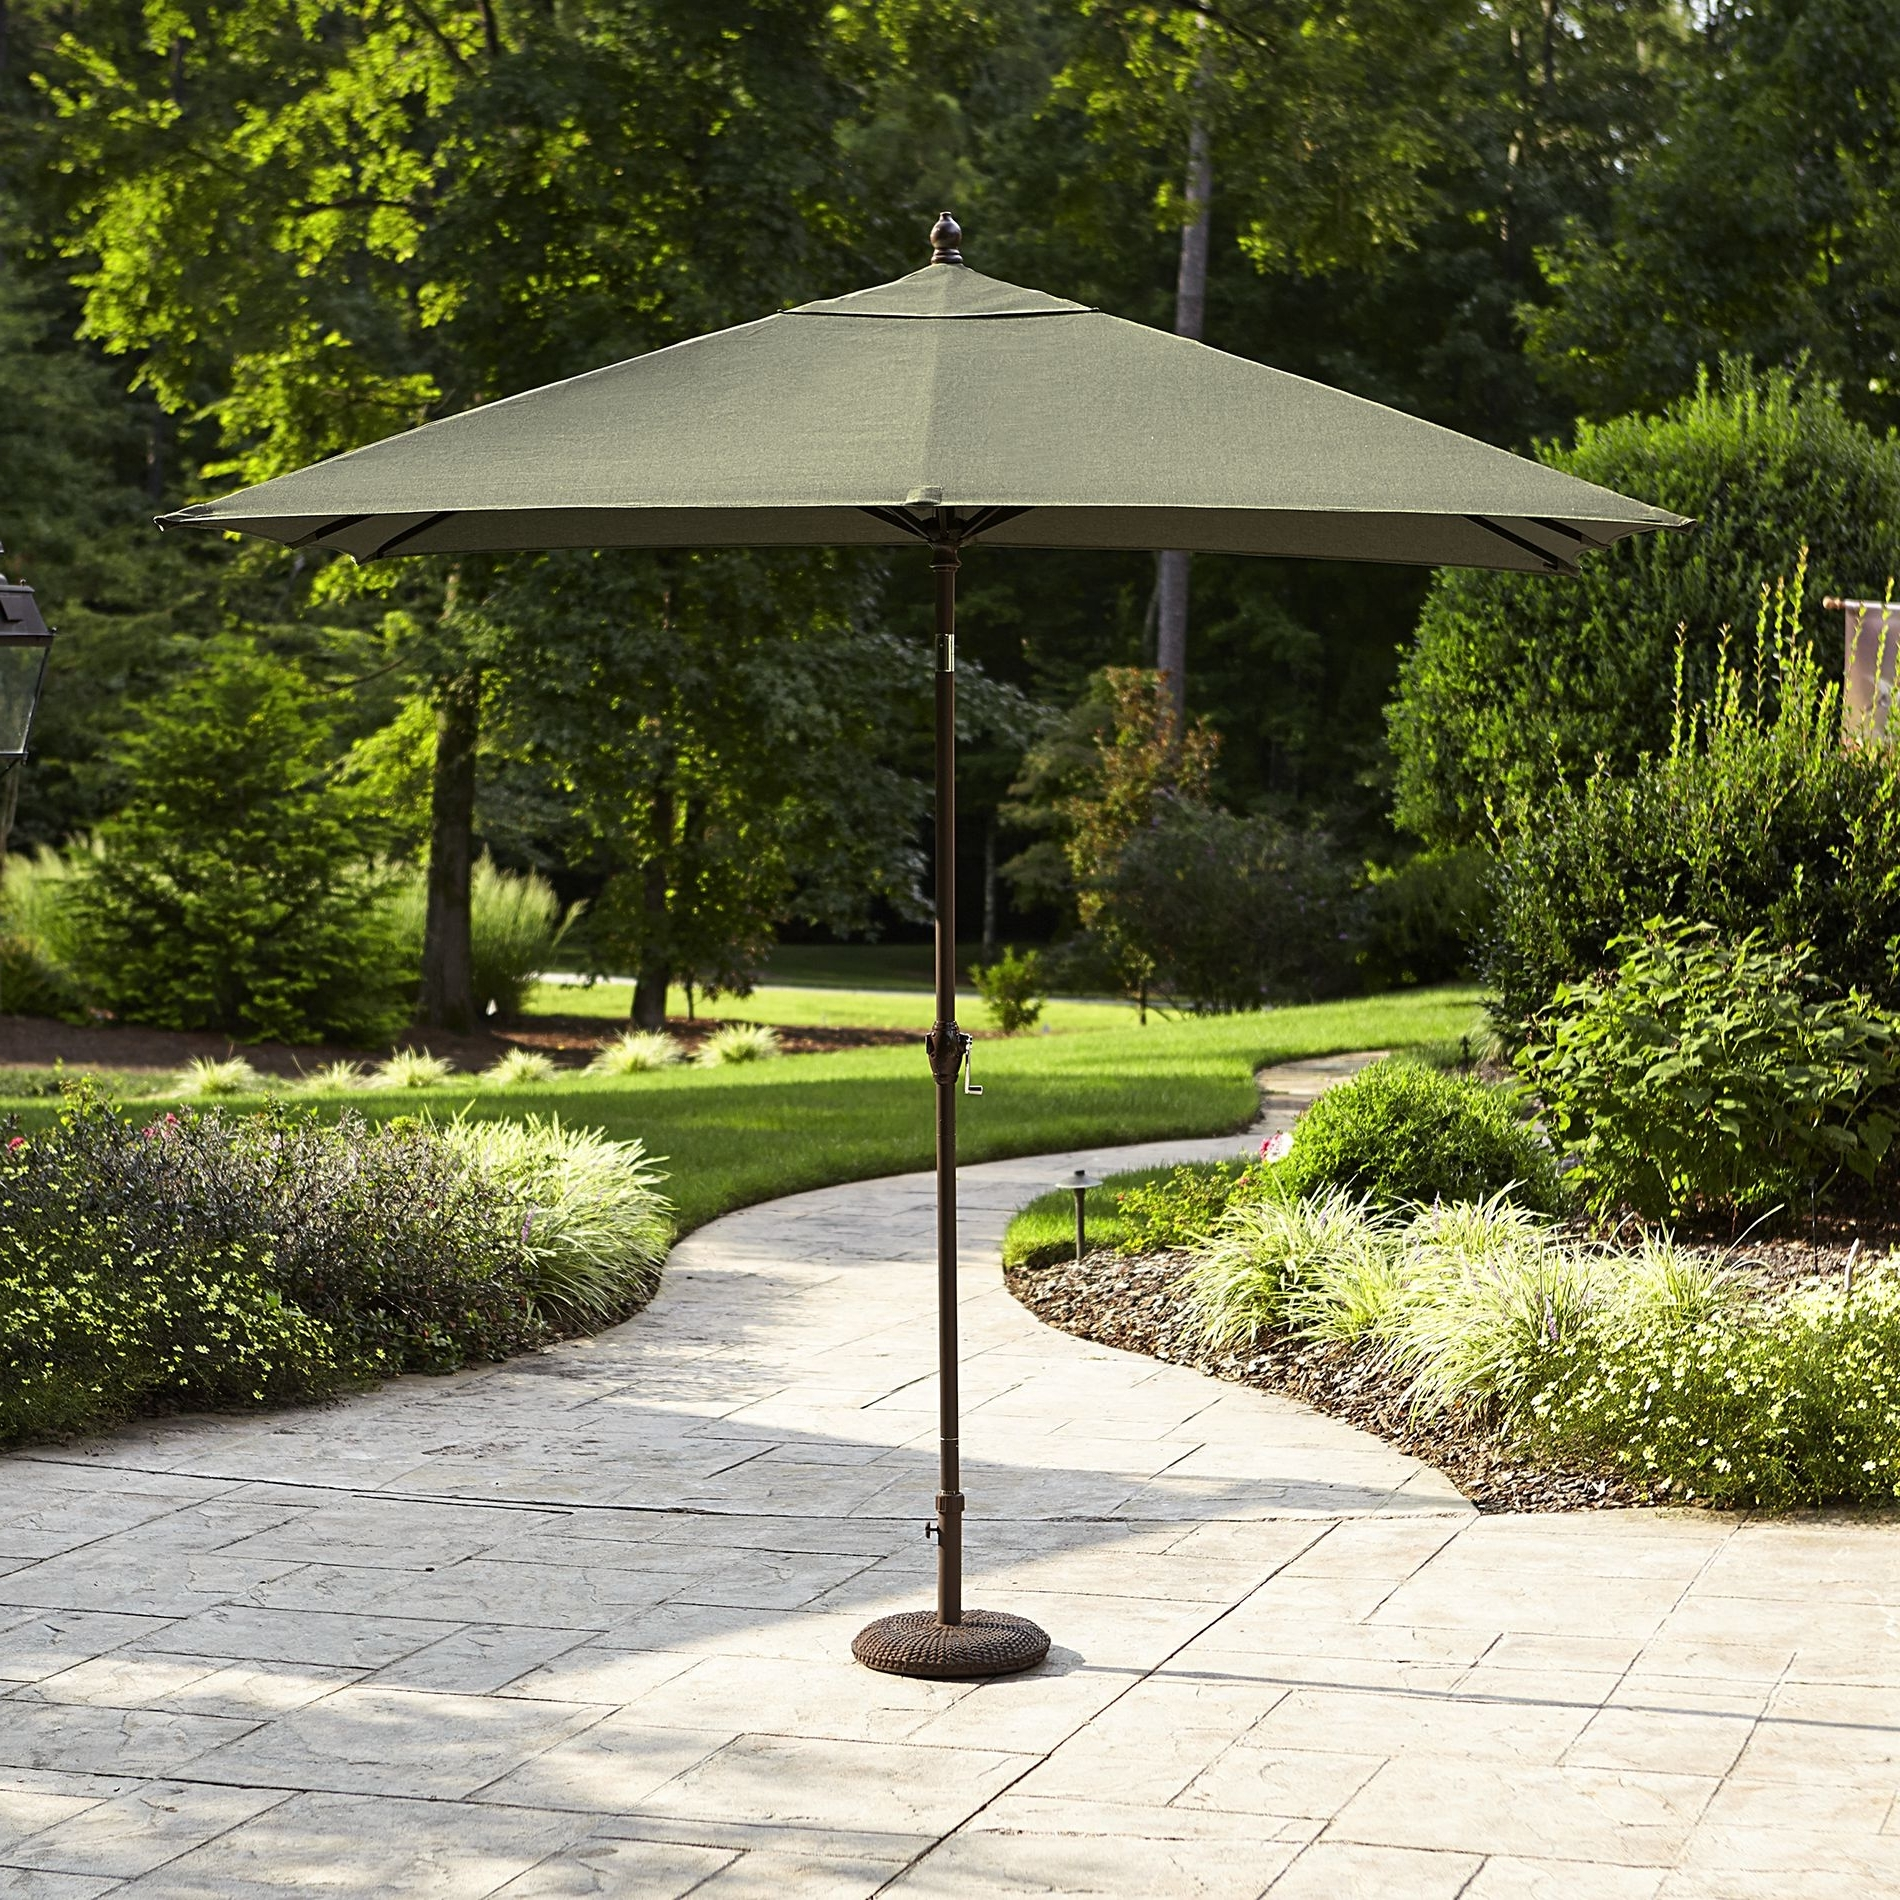 2018 Sears Patio Umbrellas Inside Sears: Green La Z Boy Madeline 9' X 6' Rectangular Patio Umbrella (View 1 of 20)